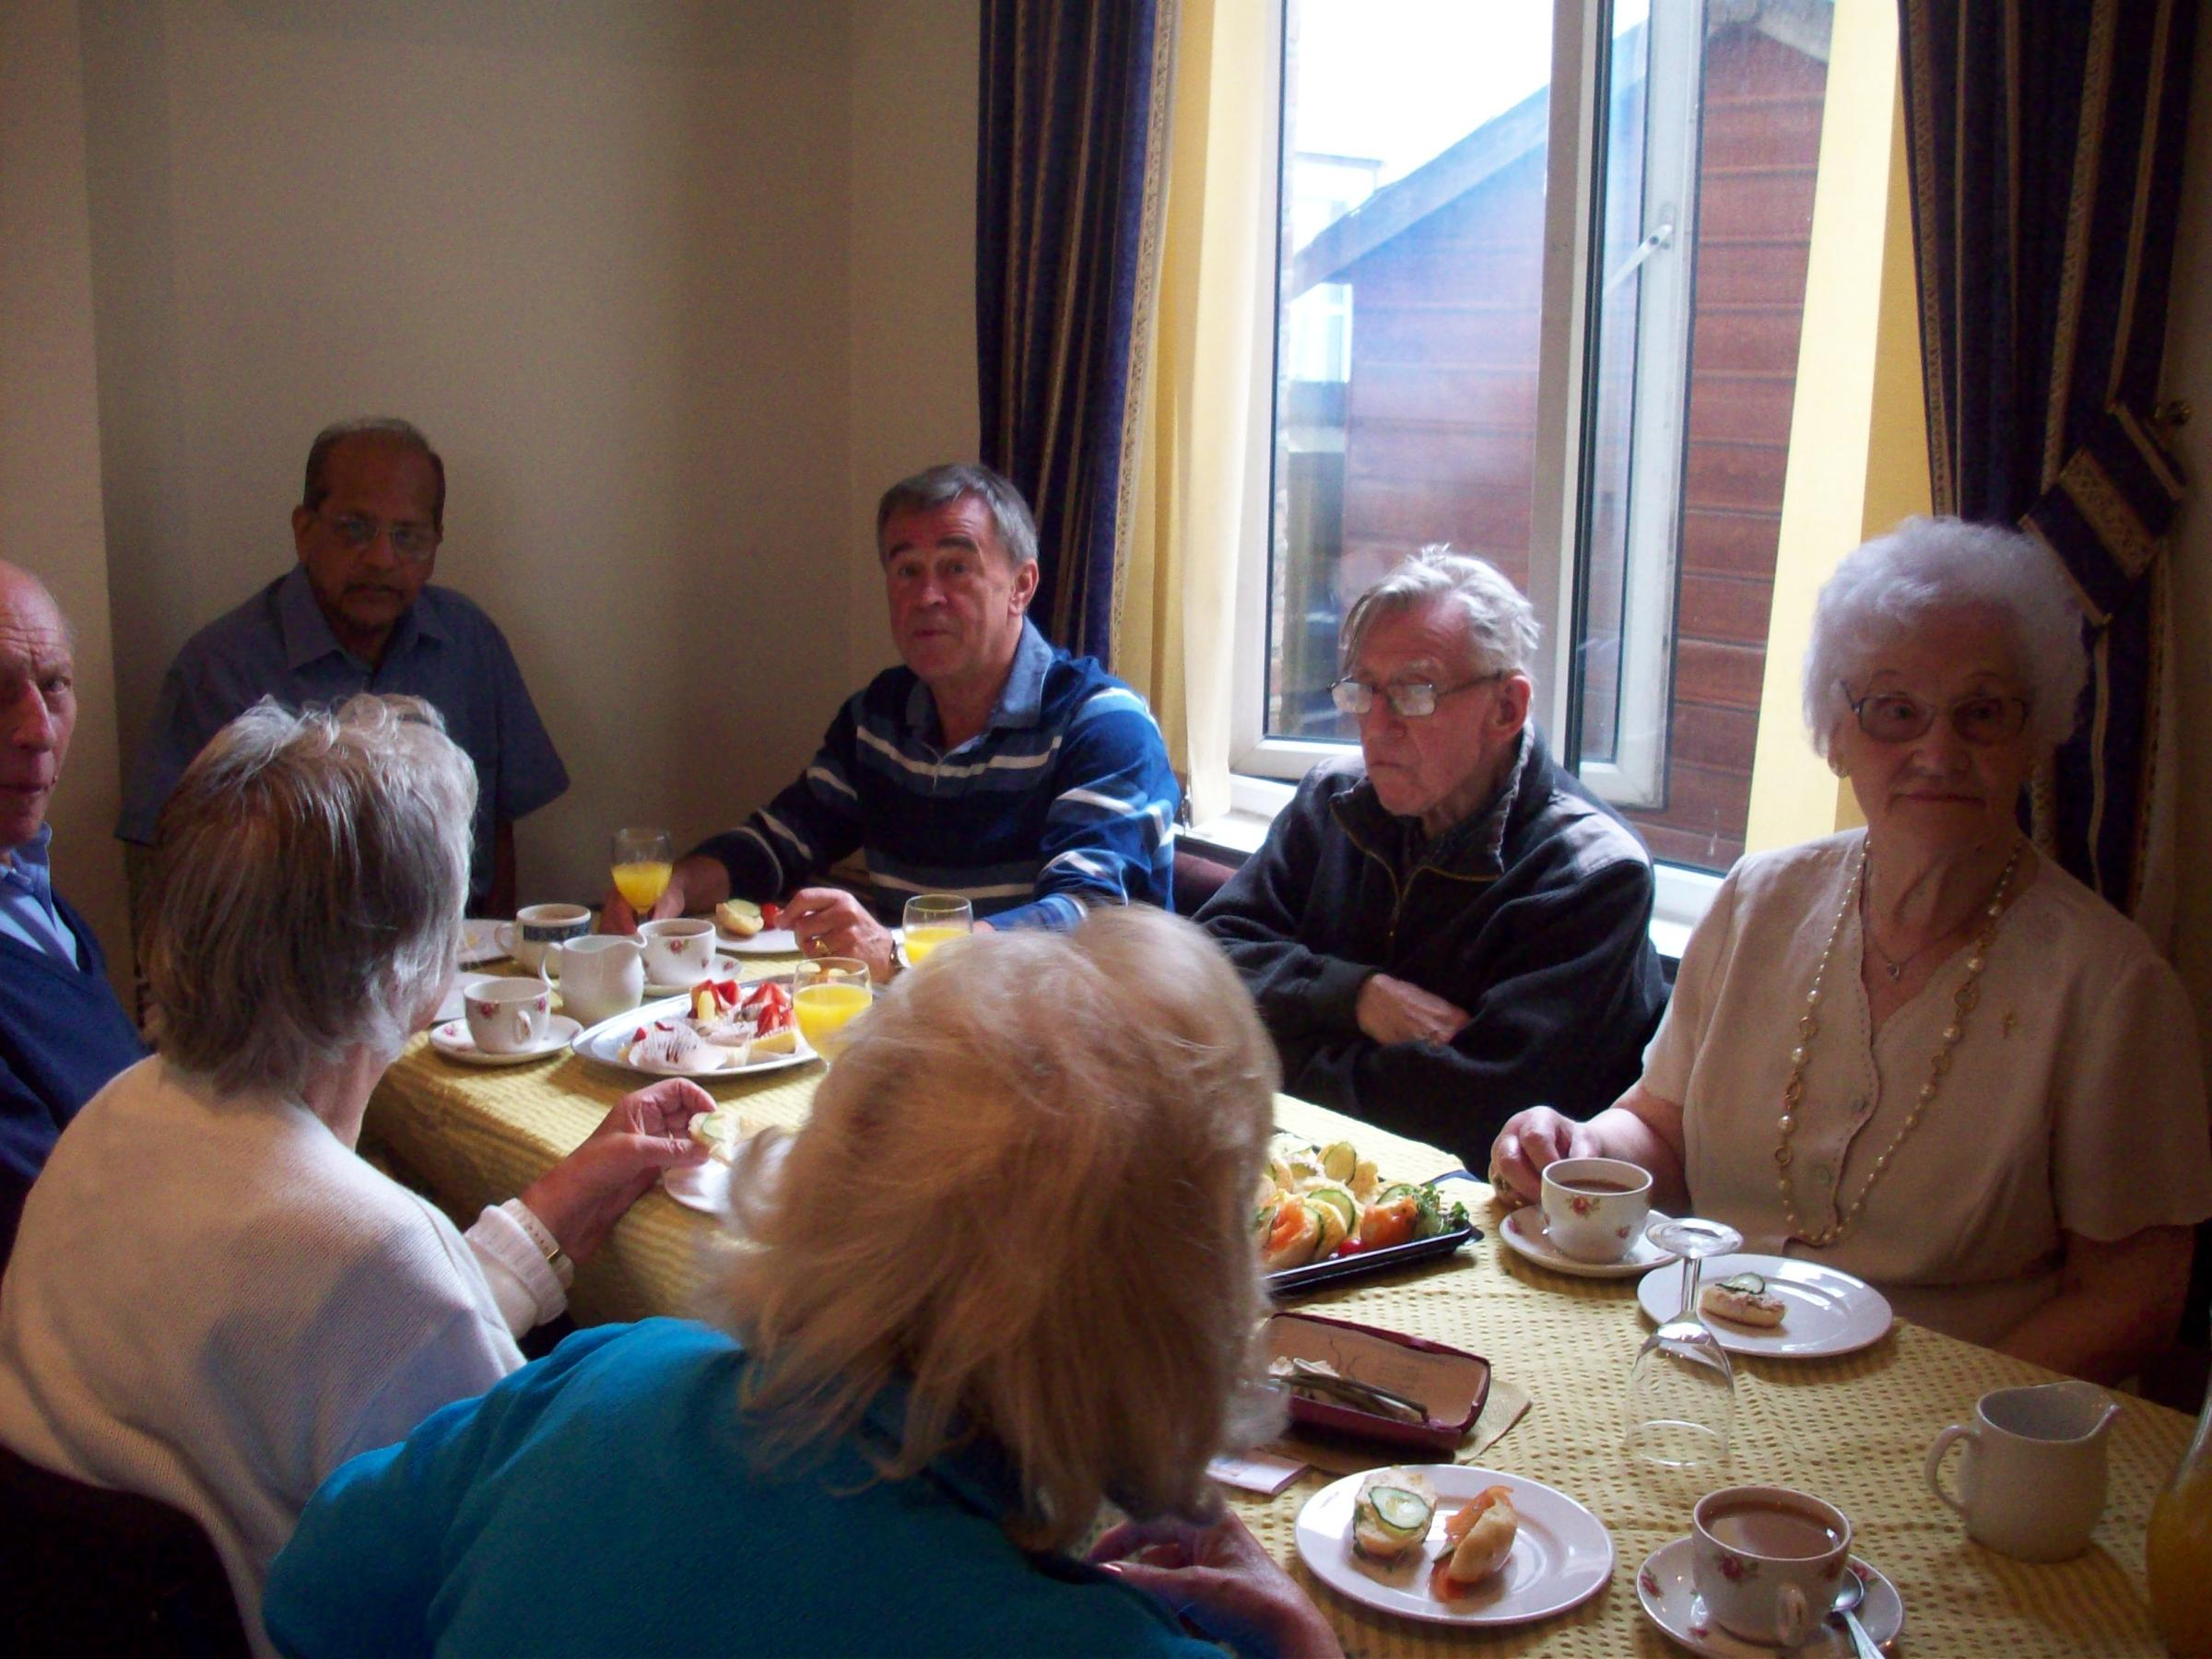 Tea party to help combat loneliness